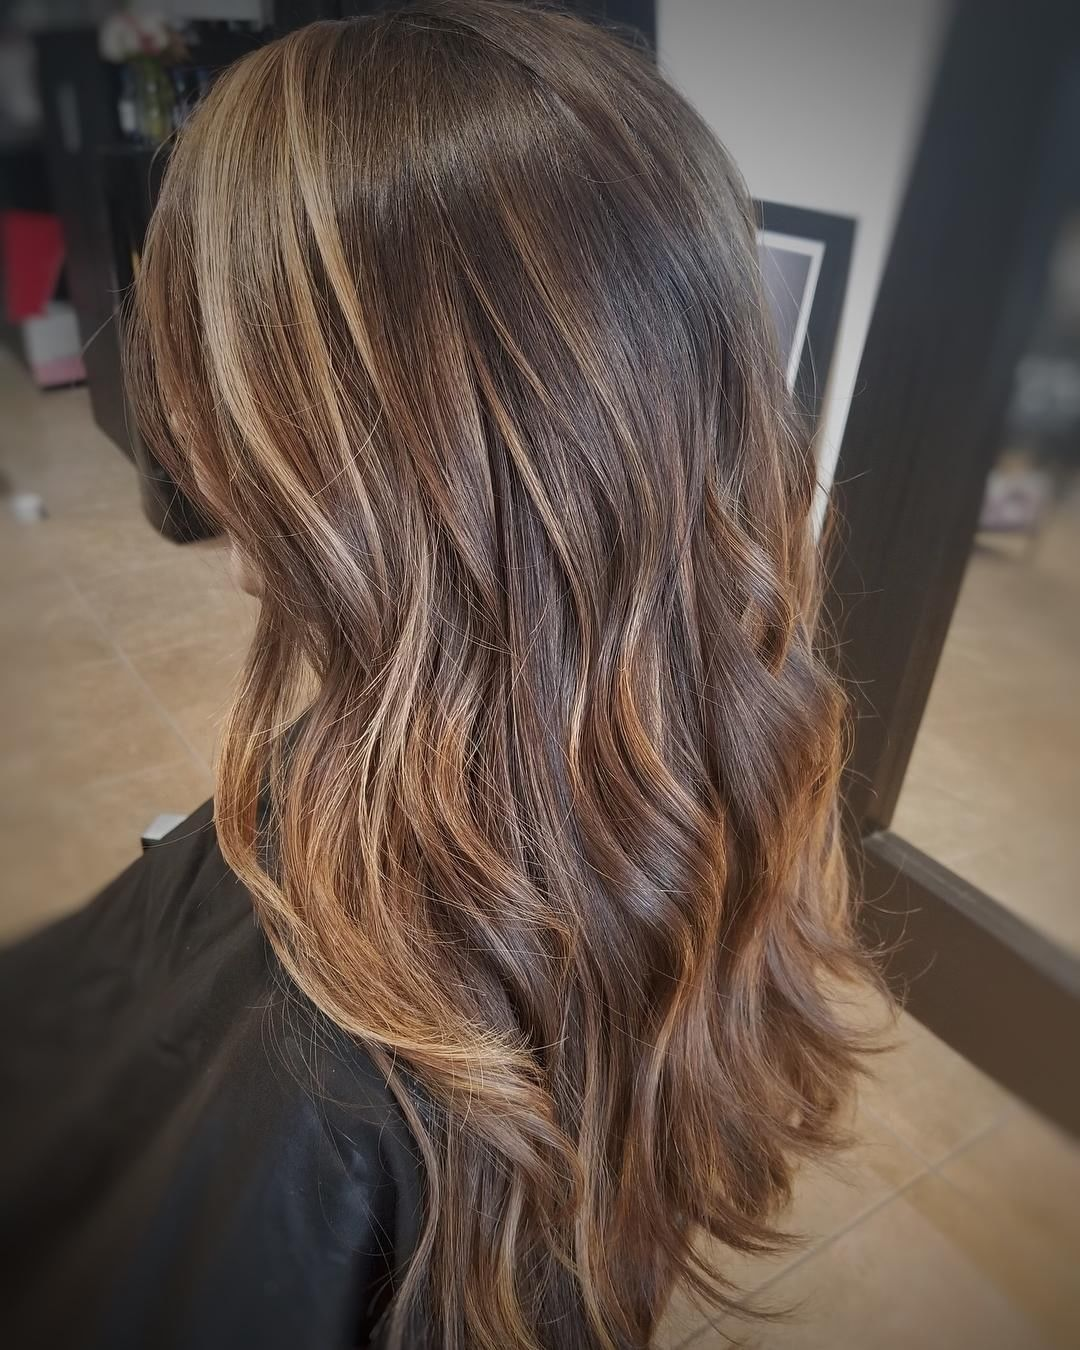 Honeycombsaloncc Created This Incredibly Shiny Color Personality Love That Sambuca Using Tones 9a And 9p Aloxxihair A Hair Color Personality Shiny Hair